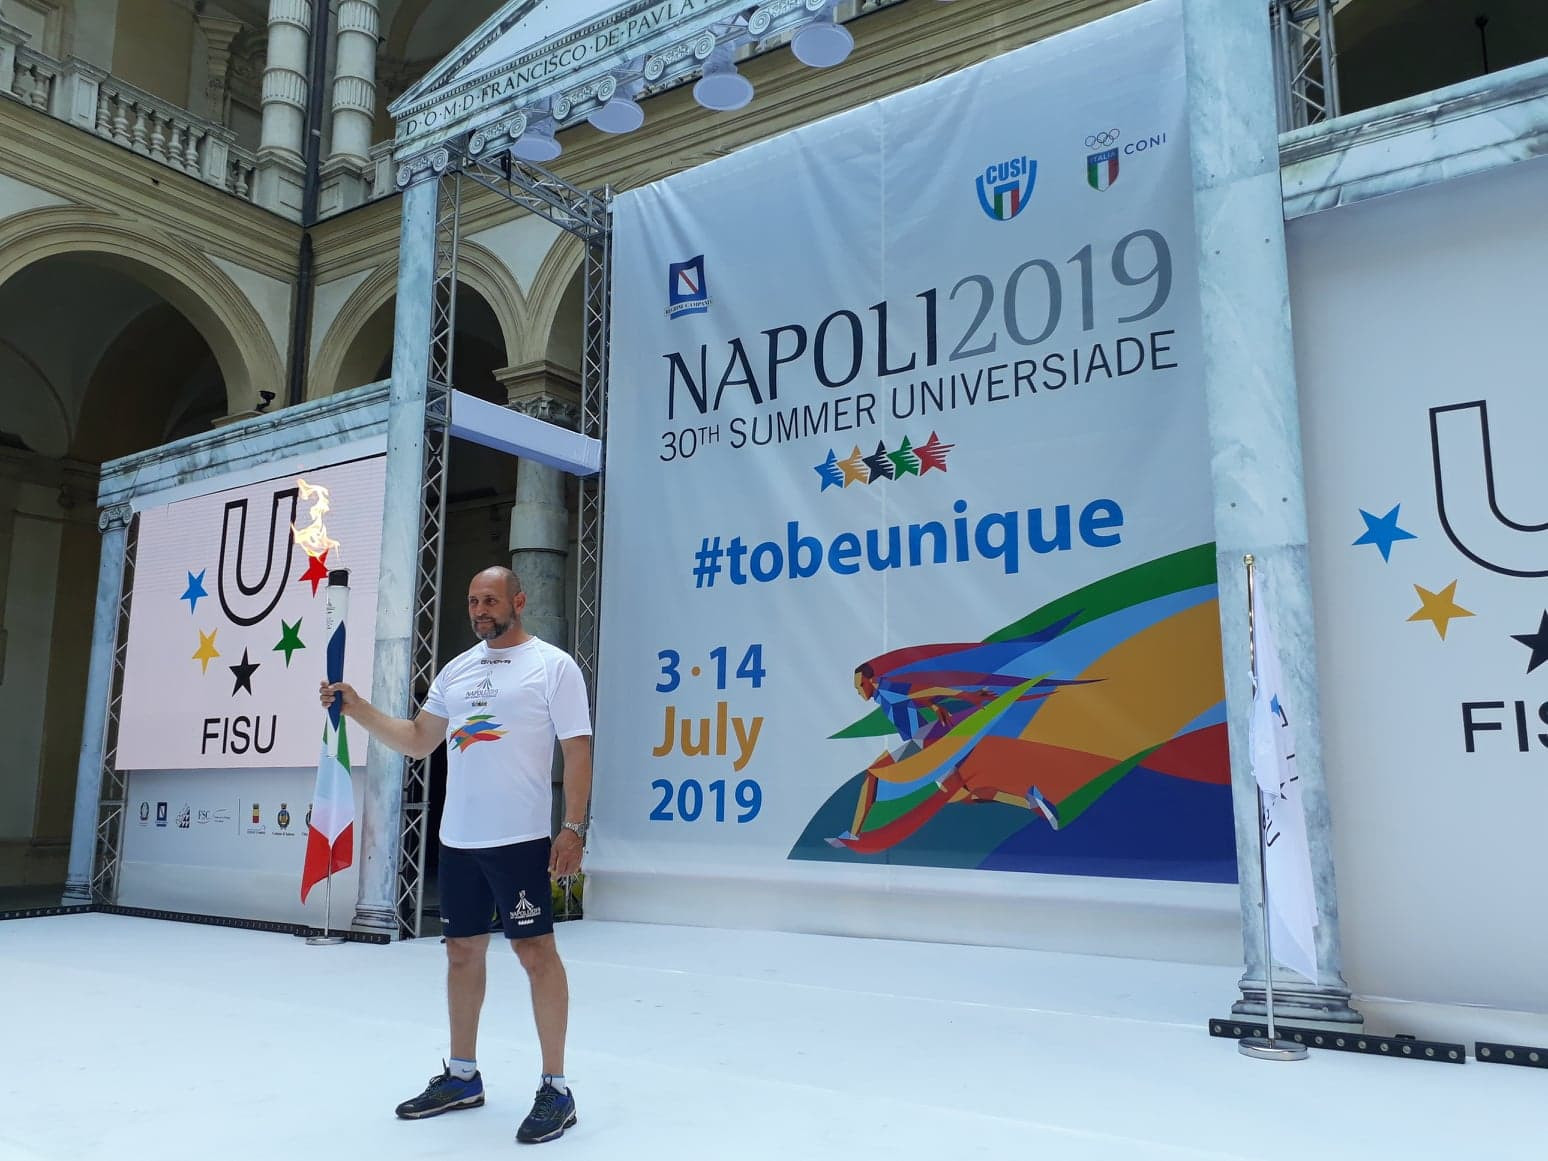 Italian double Olympic rowing champion Davide Tizzano began the Torch Relay for the Naples 2019 Summer Universiade ©ITG